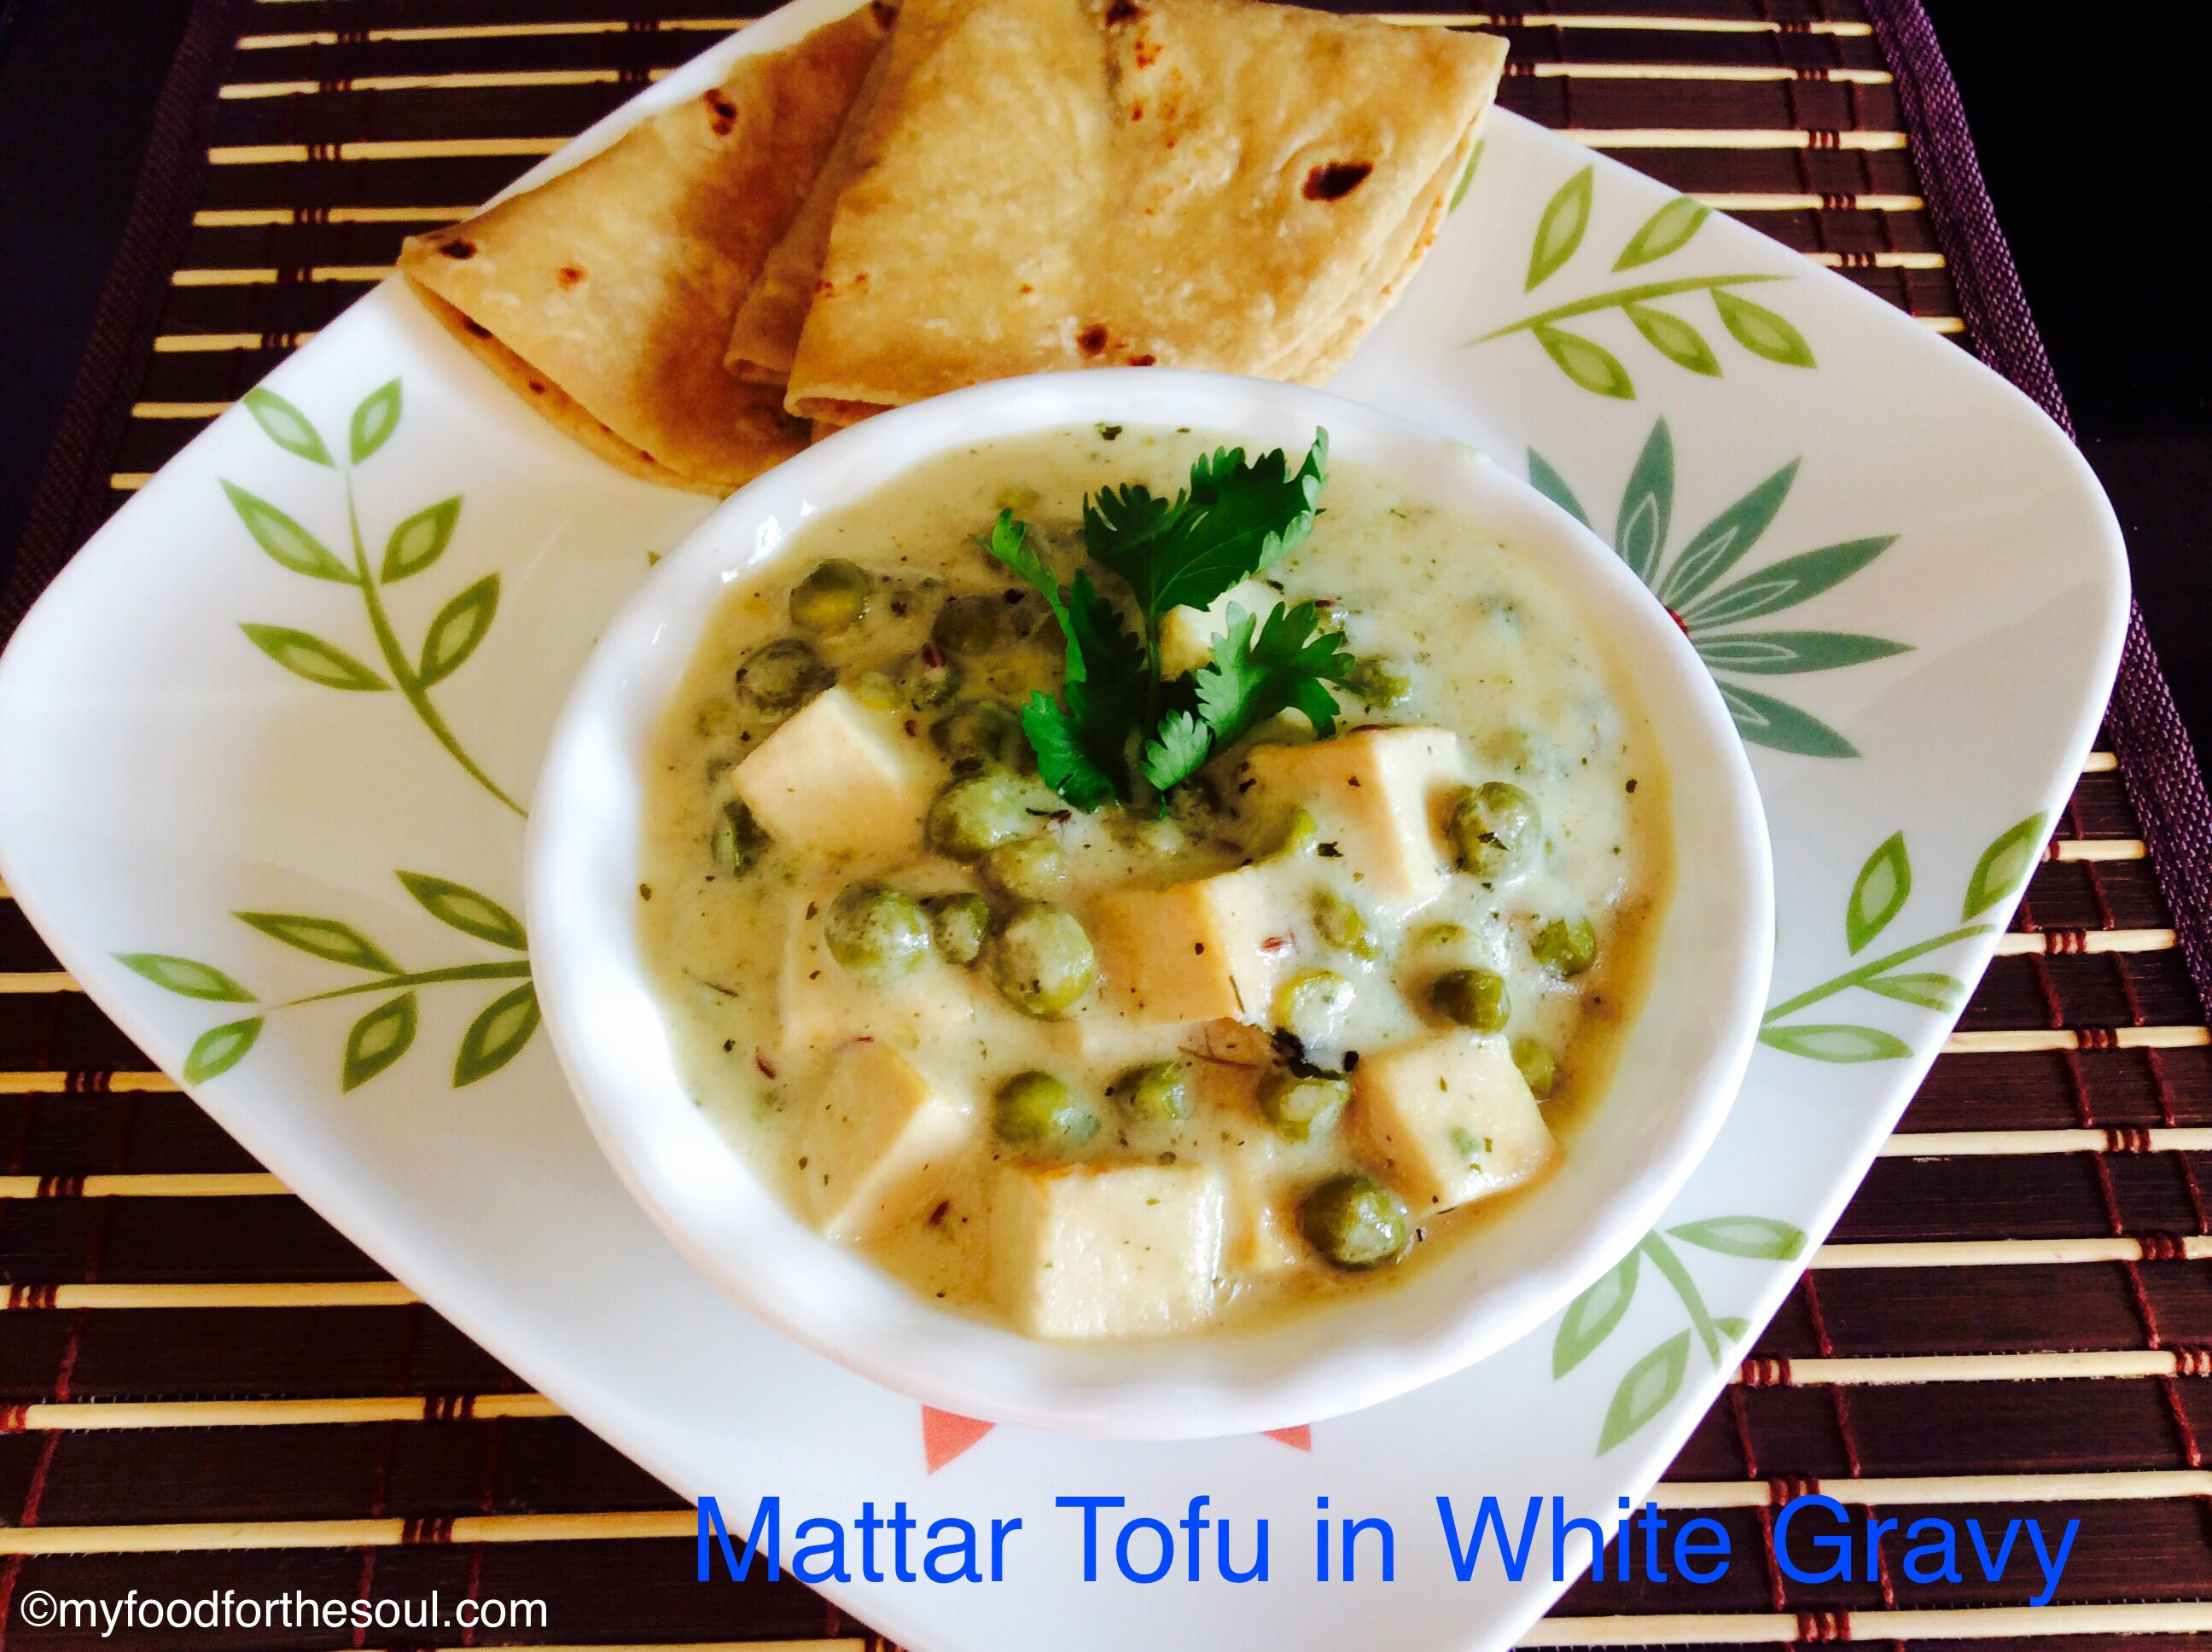 Mattar Tofu in White Gravy